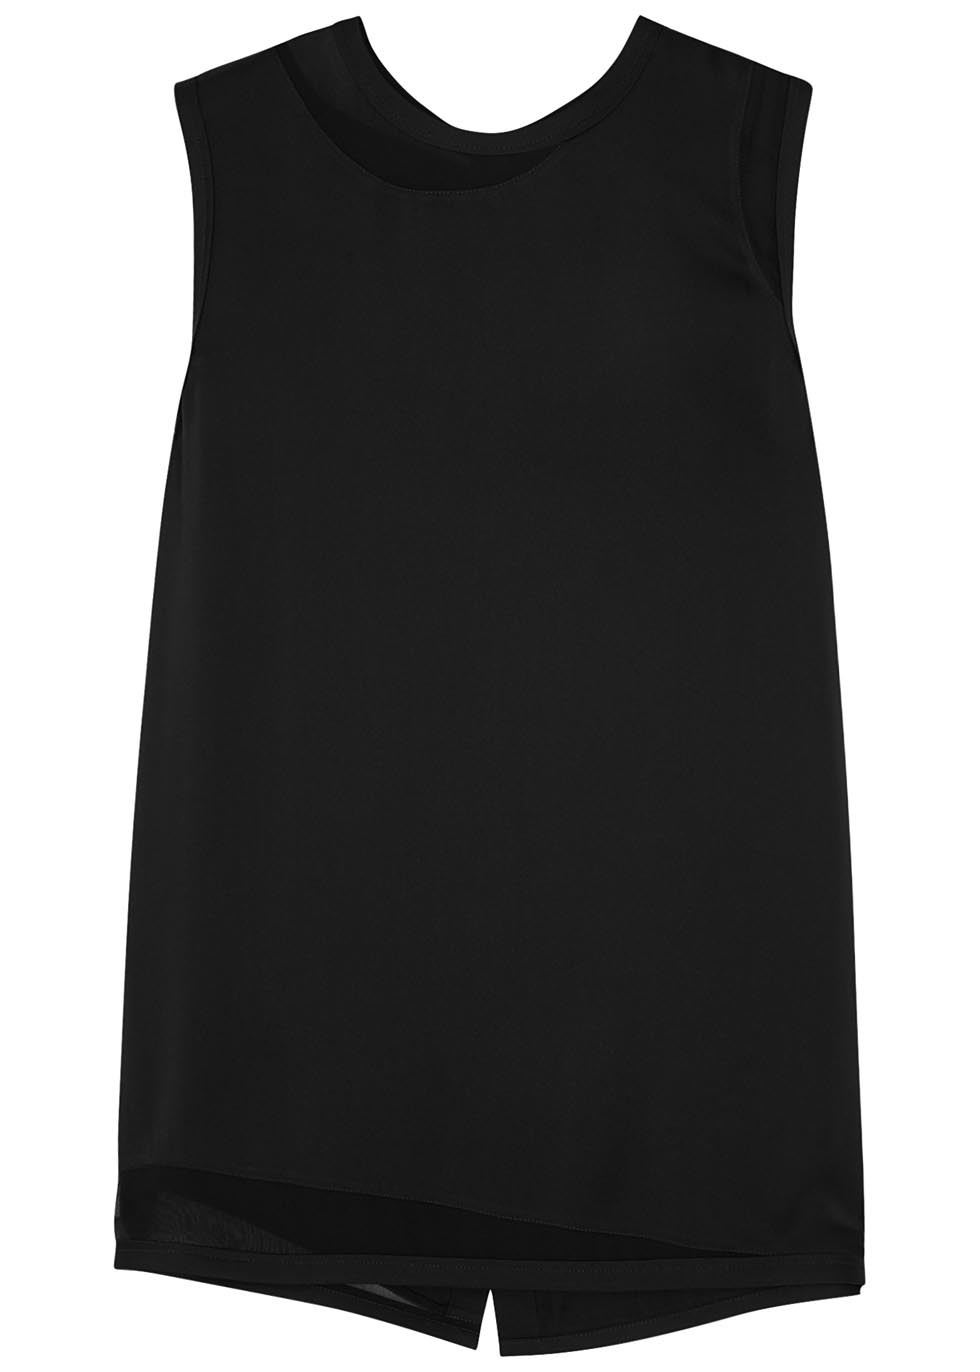 Black Satin And Georgette Top - pattern: plain; sleeve style: sleeveless; style: vest top; predominant colour: black; occasions: evening; length: standard; fibres: silk - 100%; fit: body skimming; neckline: crew; sleeve length: sleeveless; texture group: crepes; pattern type: fabric; season: s/s 2016; wardrobe: event